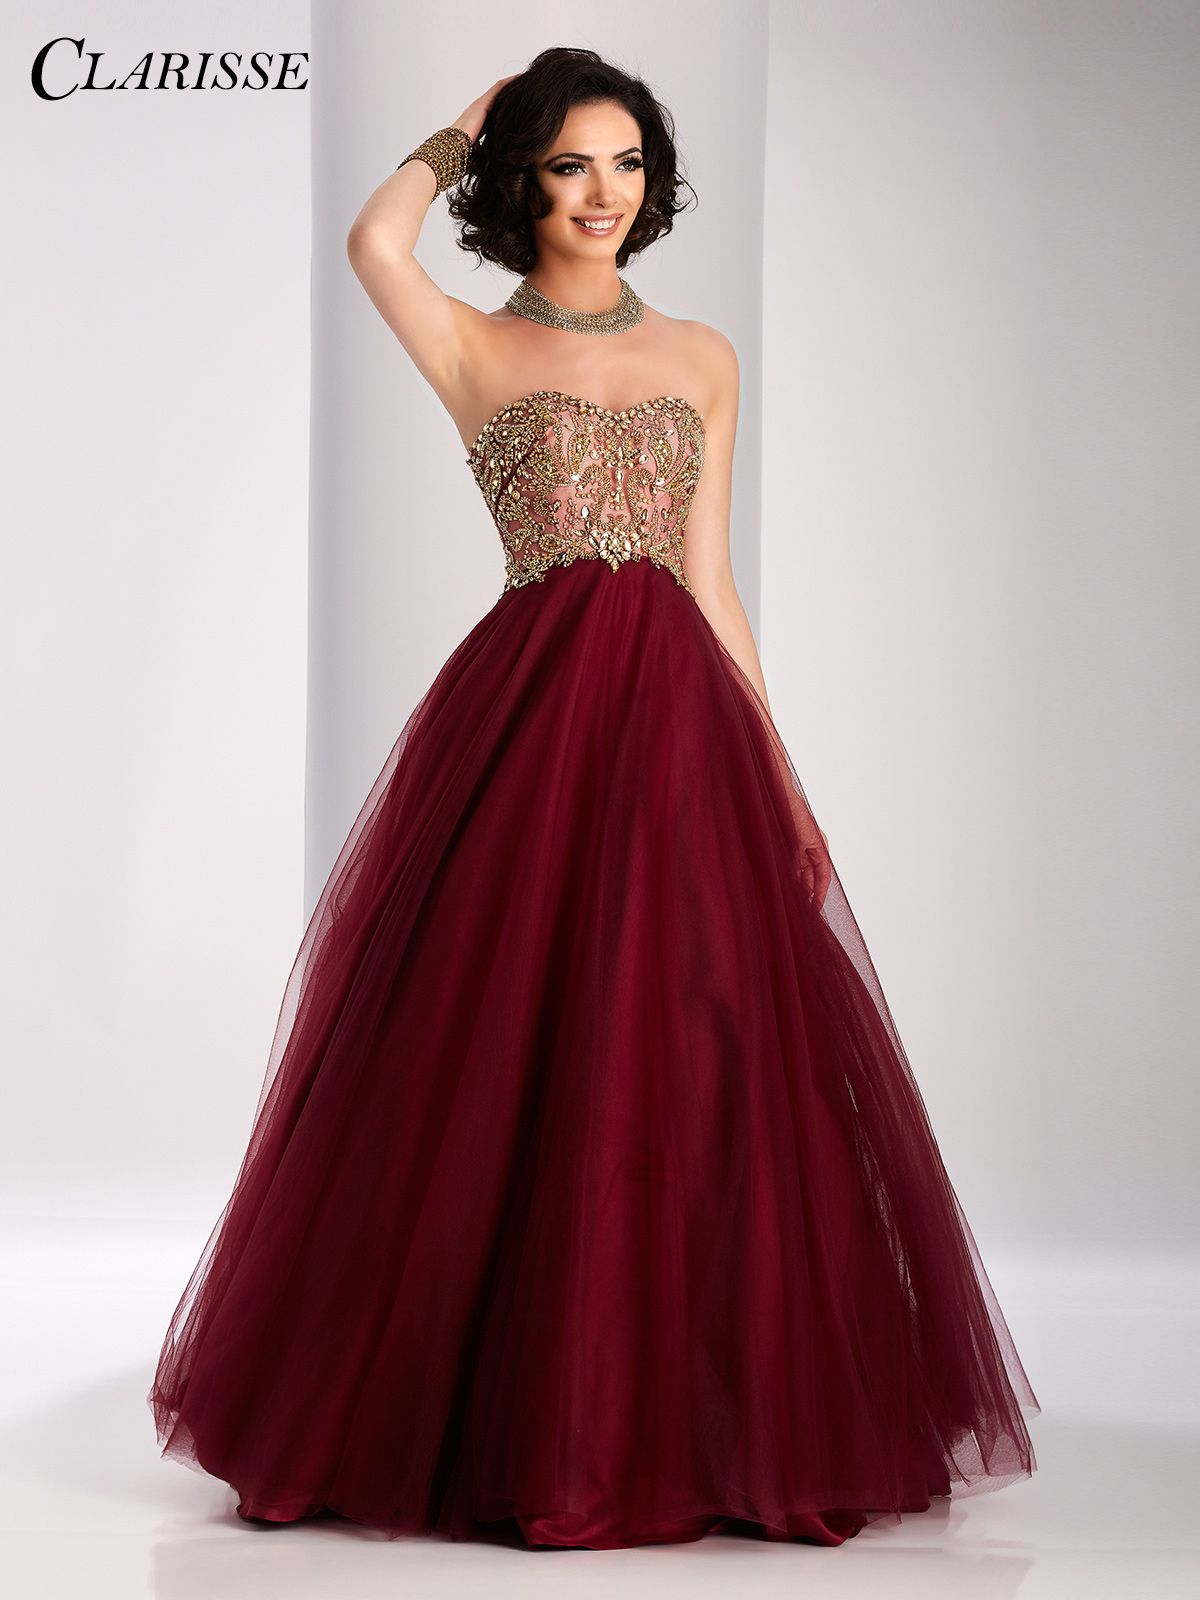 Clarisse Two Tone Ball Gown 3011 | Ball gowns, Prom and Gowns